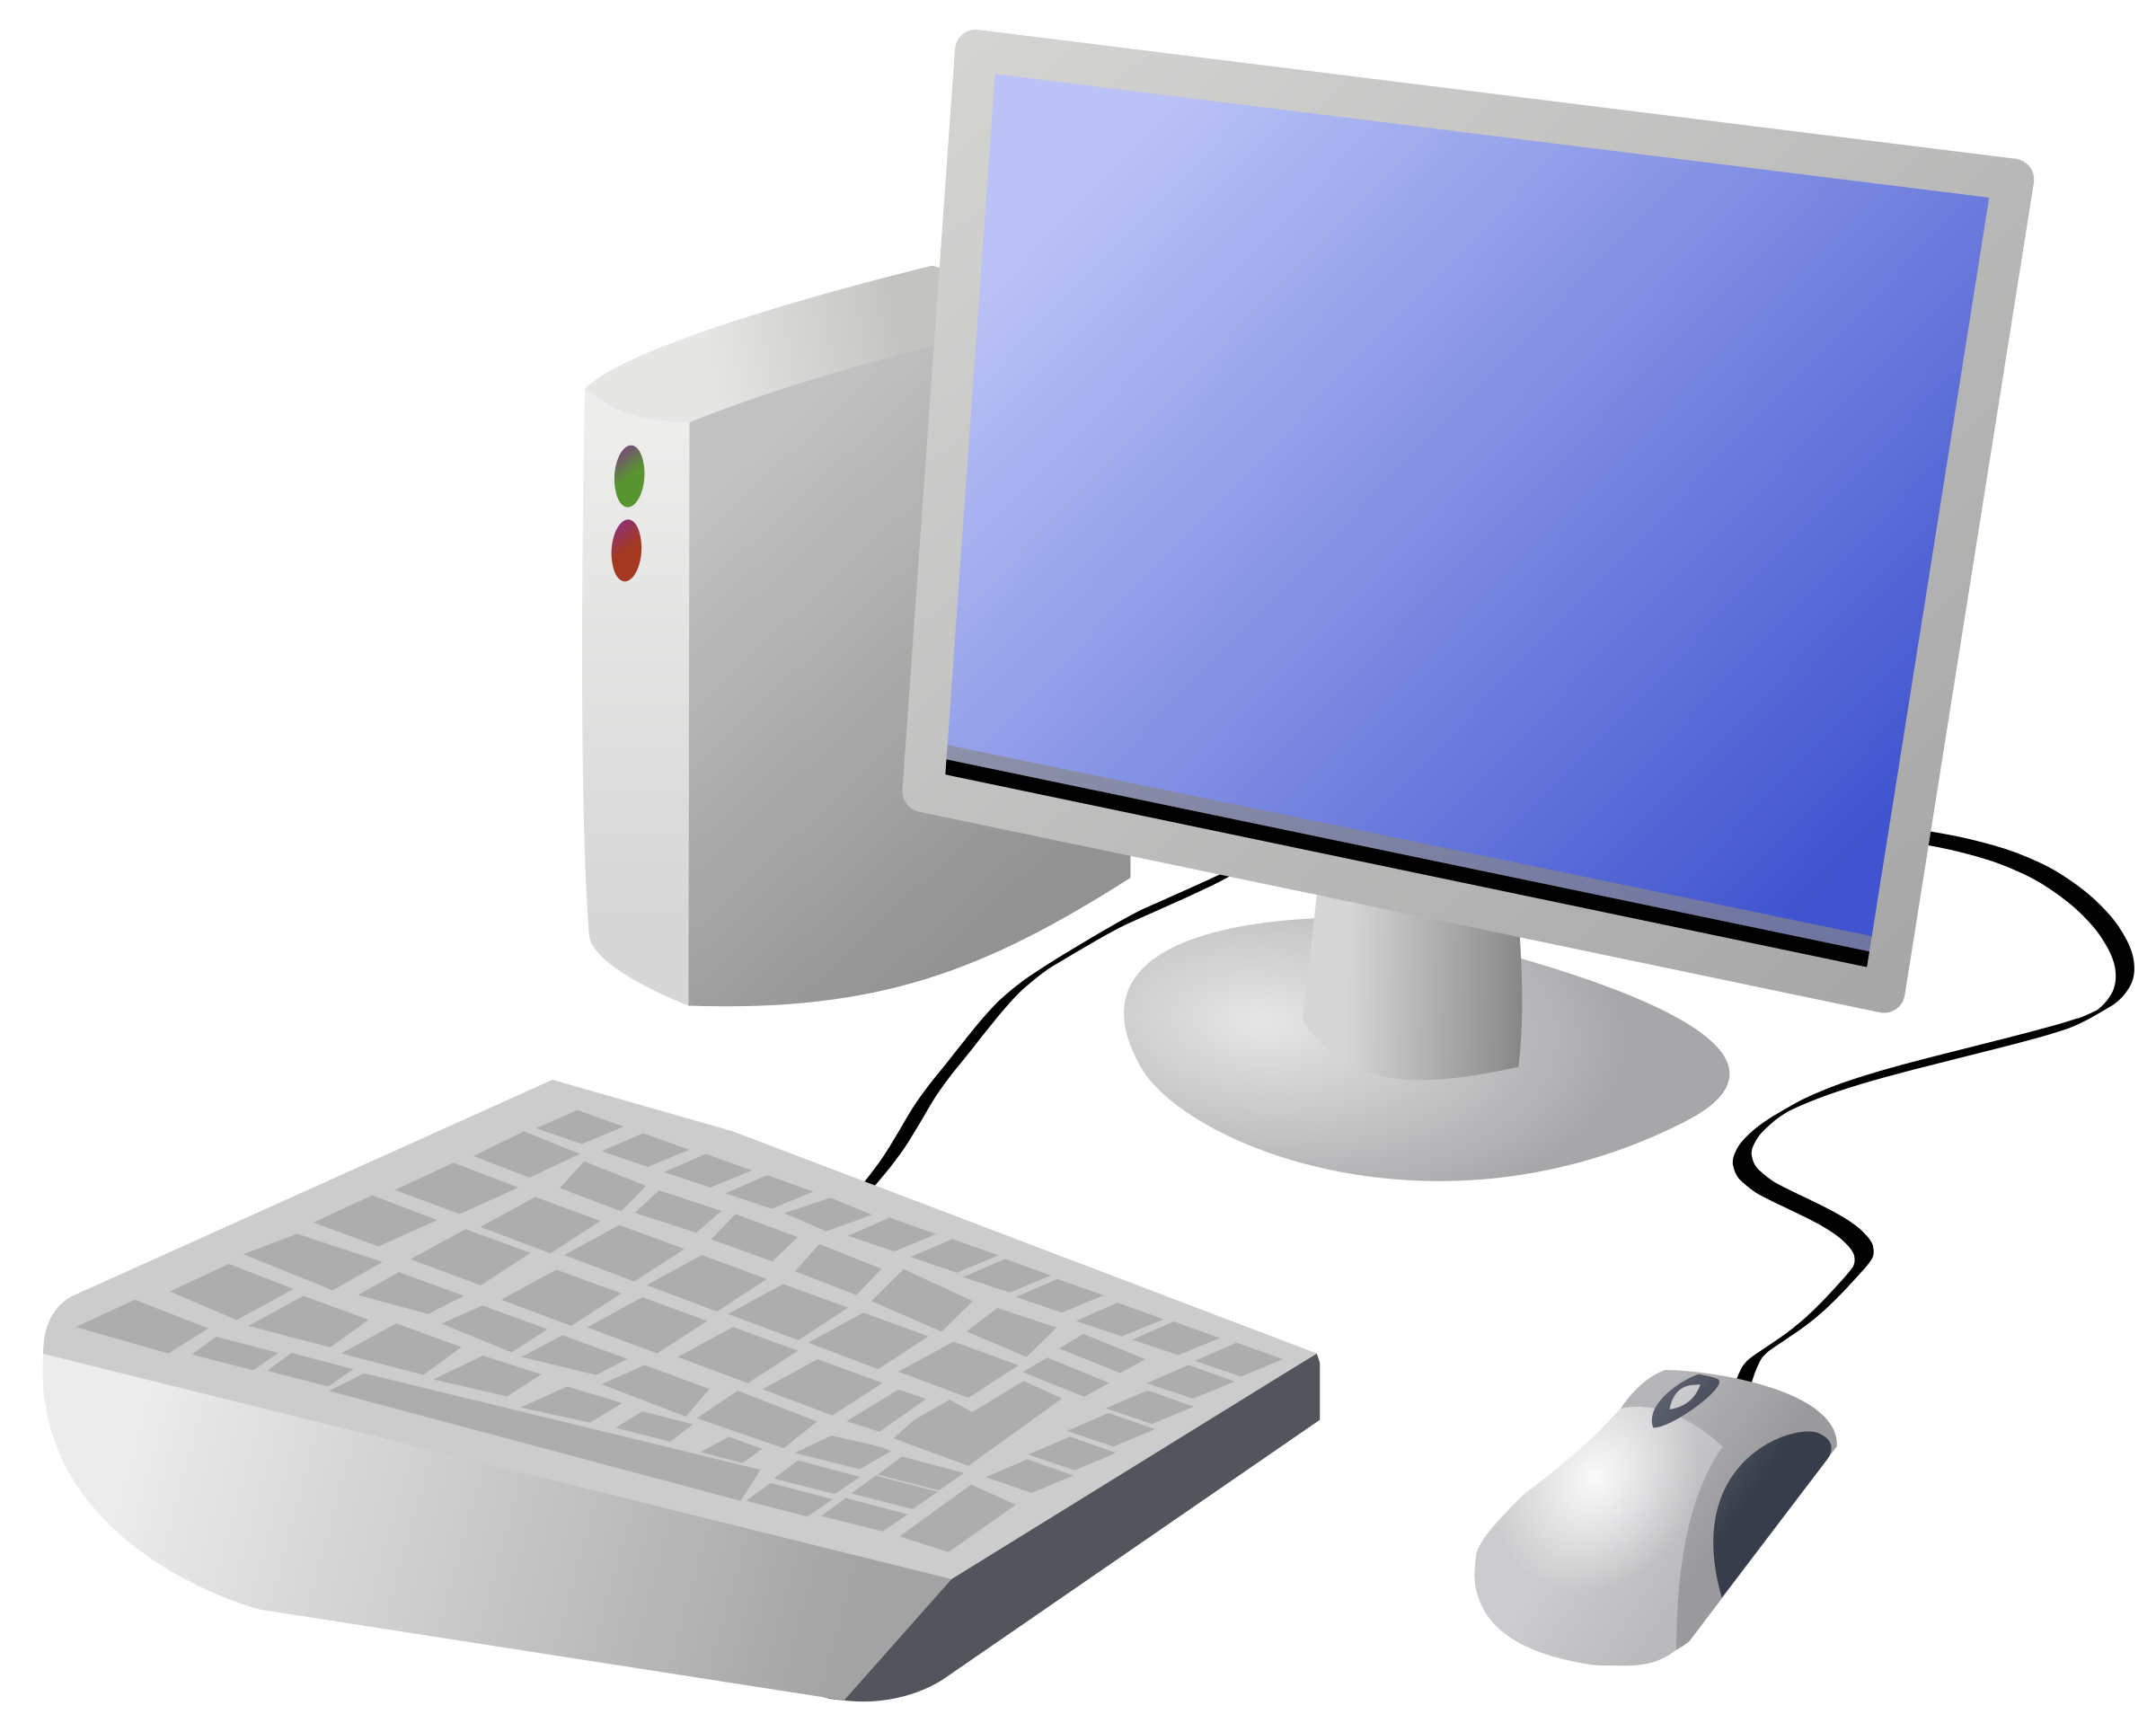 Website clipart computer area. Free cartoon images download